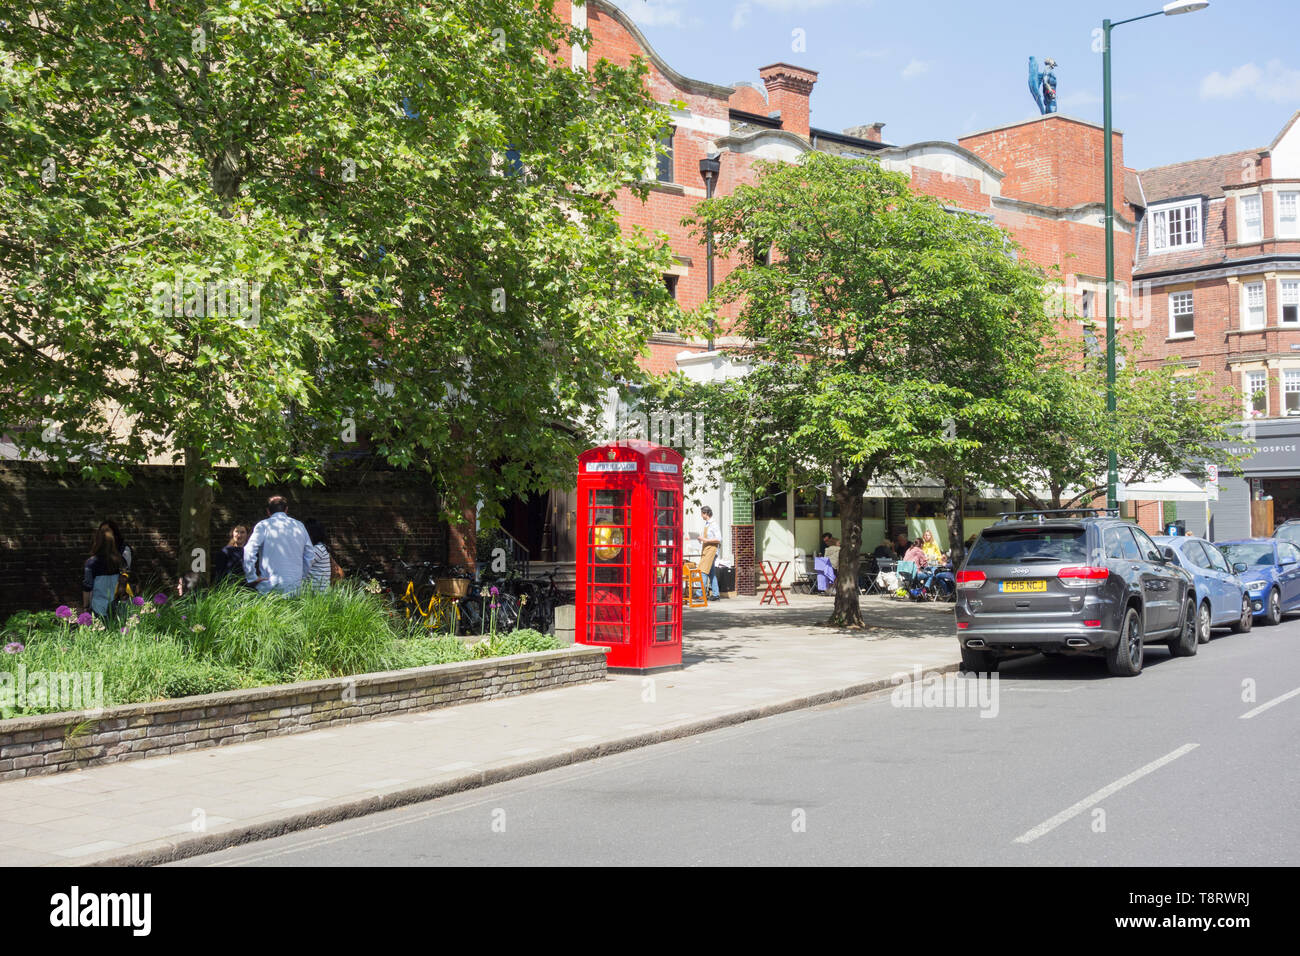 A converted Sir Giles Gilbert Scott K6 phone box, now used to store a defibrillator, in front of the Olympic Cinema, Church, Barnes, London, SW13, UK - Stock Image